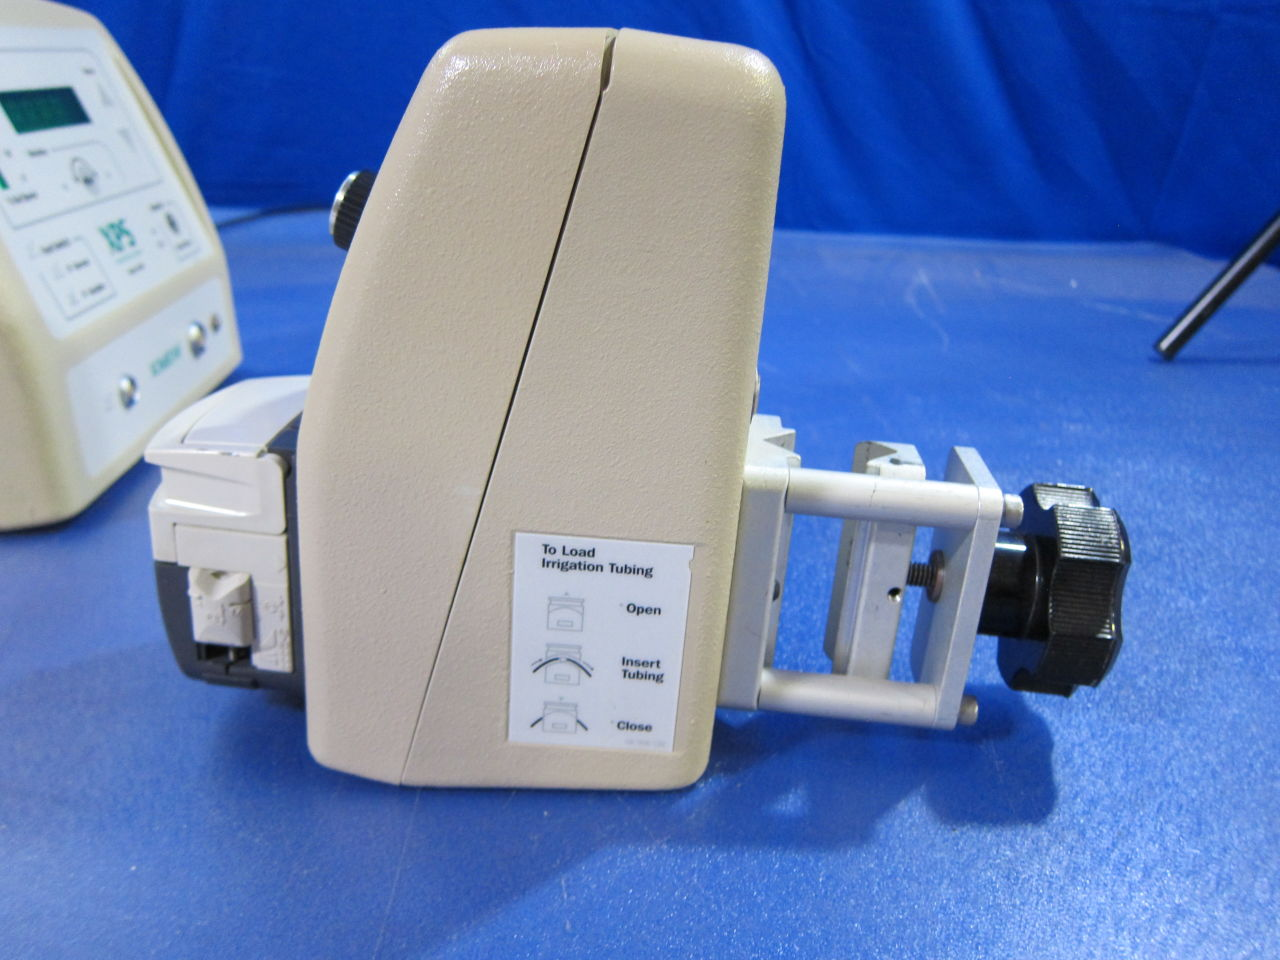 XOMED 2000 MicroResector Console